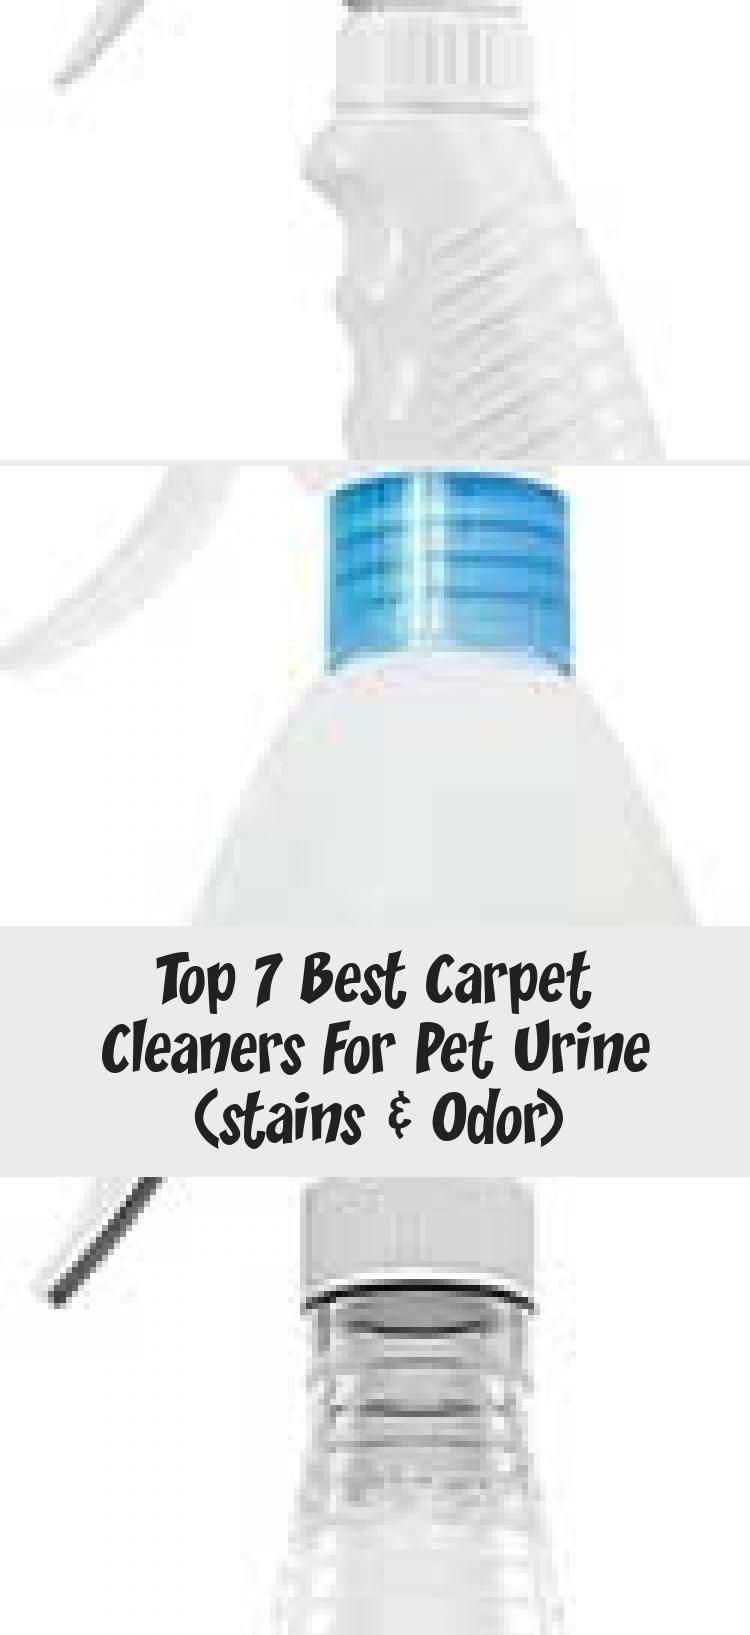 Top 7 Best Carpet Cleaners For Pet Urine Stains Odor In 2020